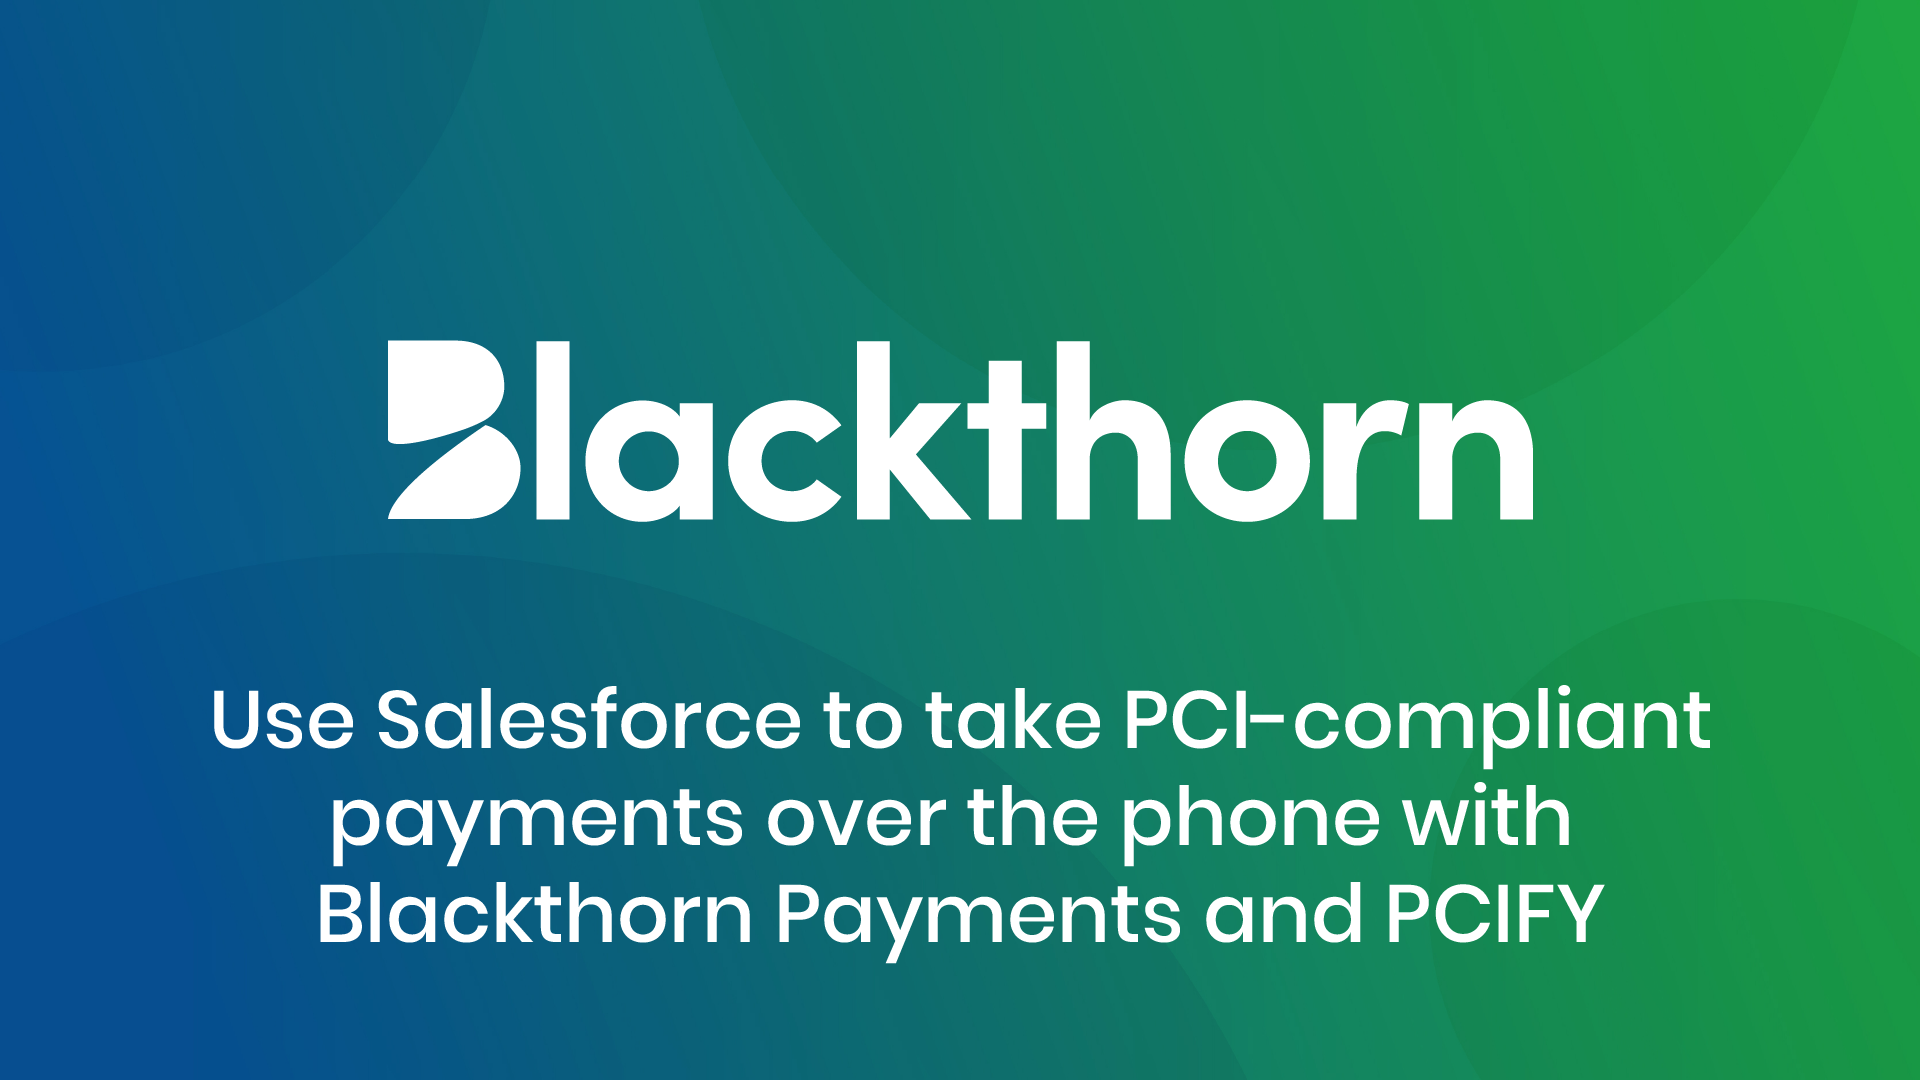 Take PCI-compliant payments over the phone with Blackthorn Payments and PCIFY